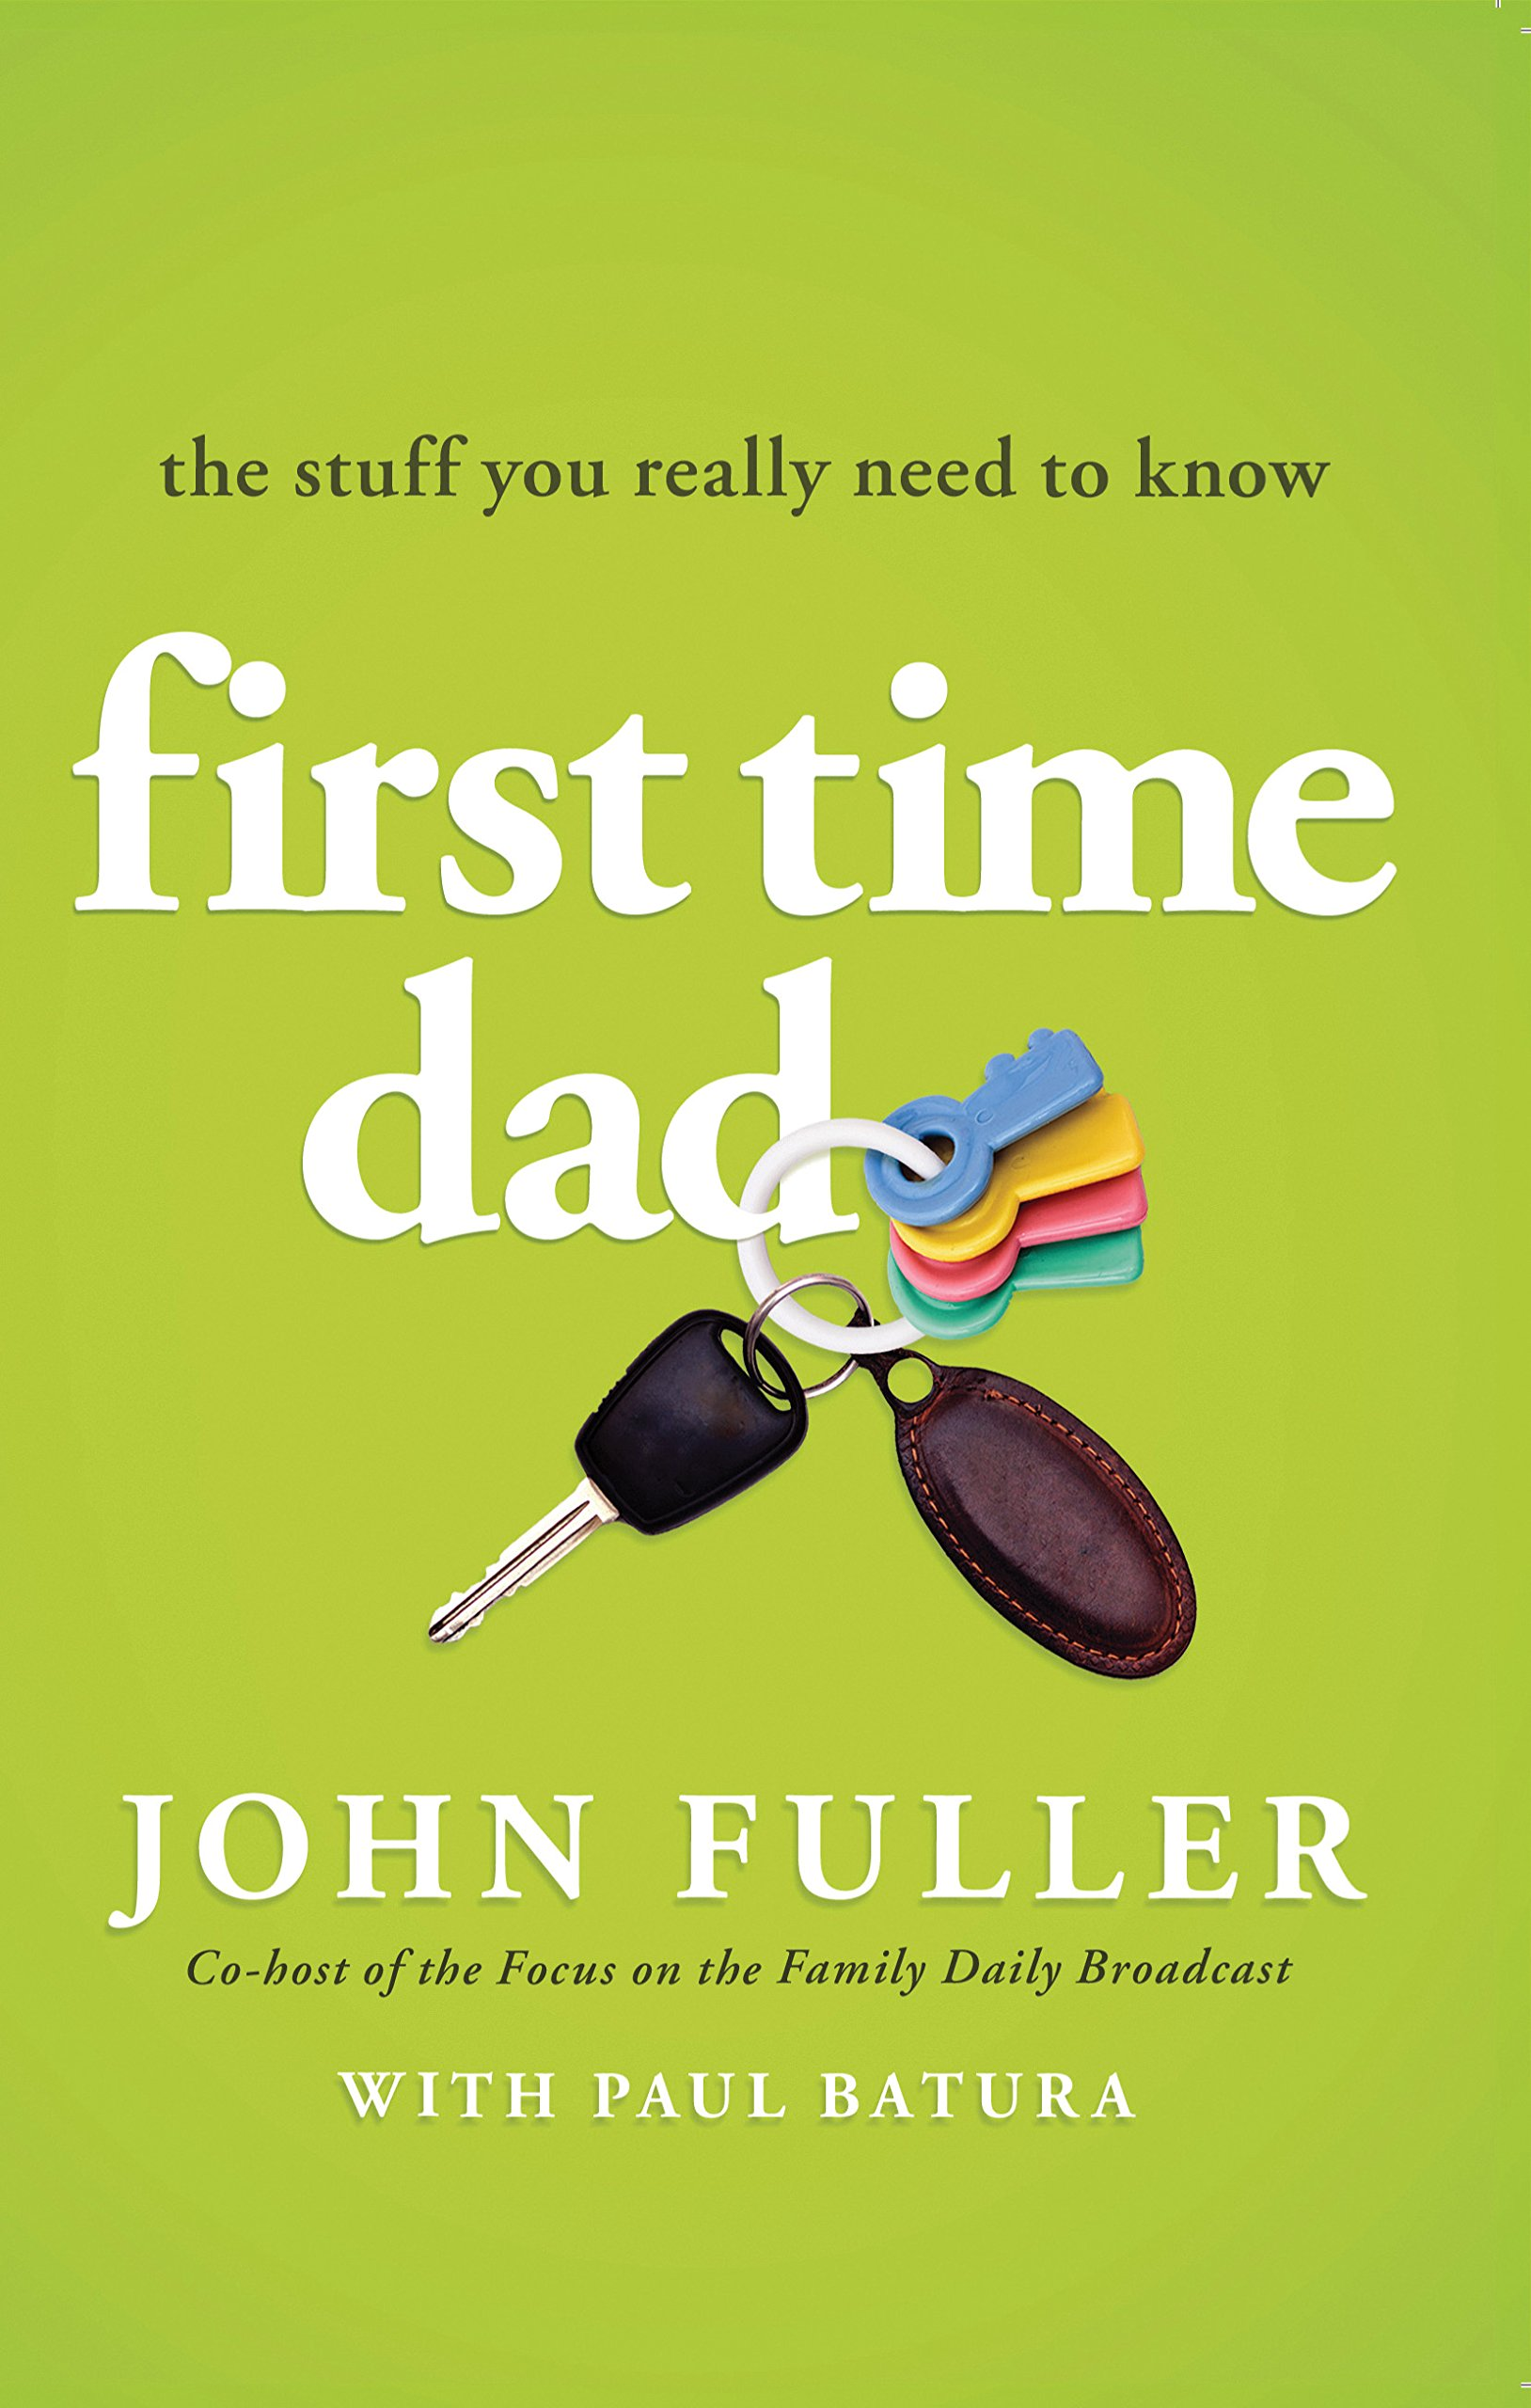 What first time dads need to know